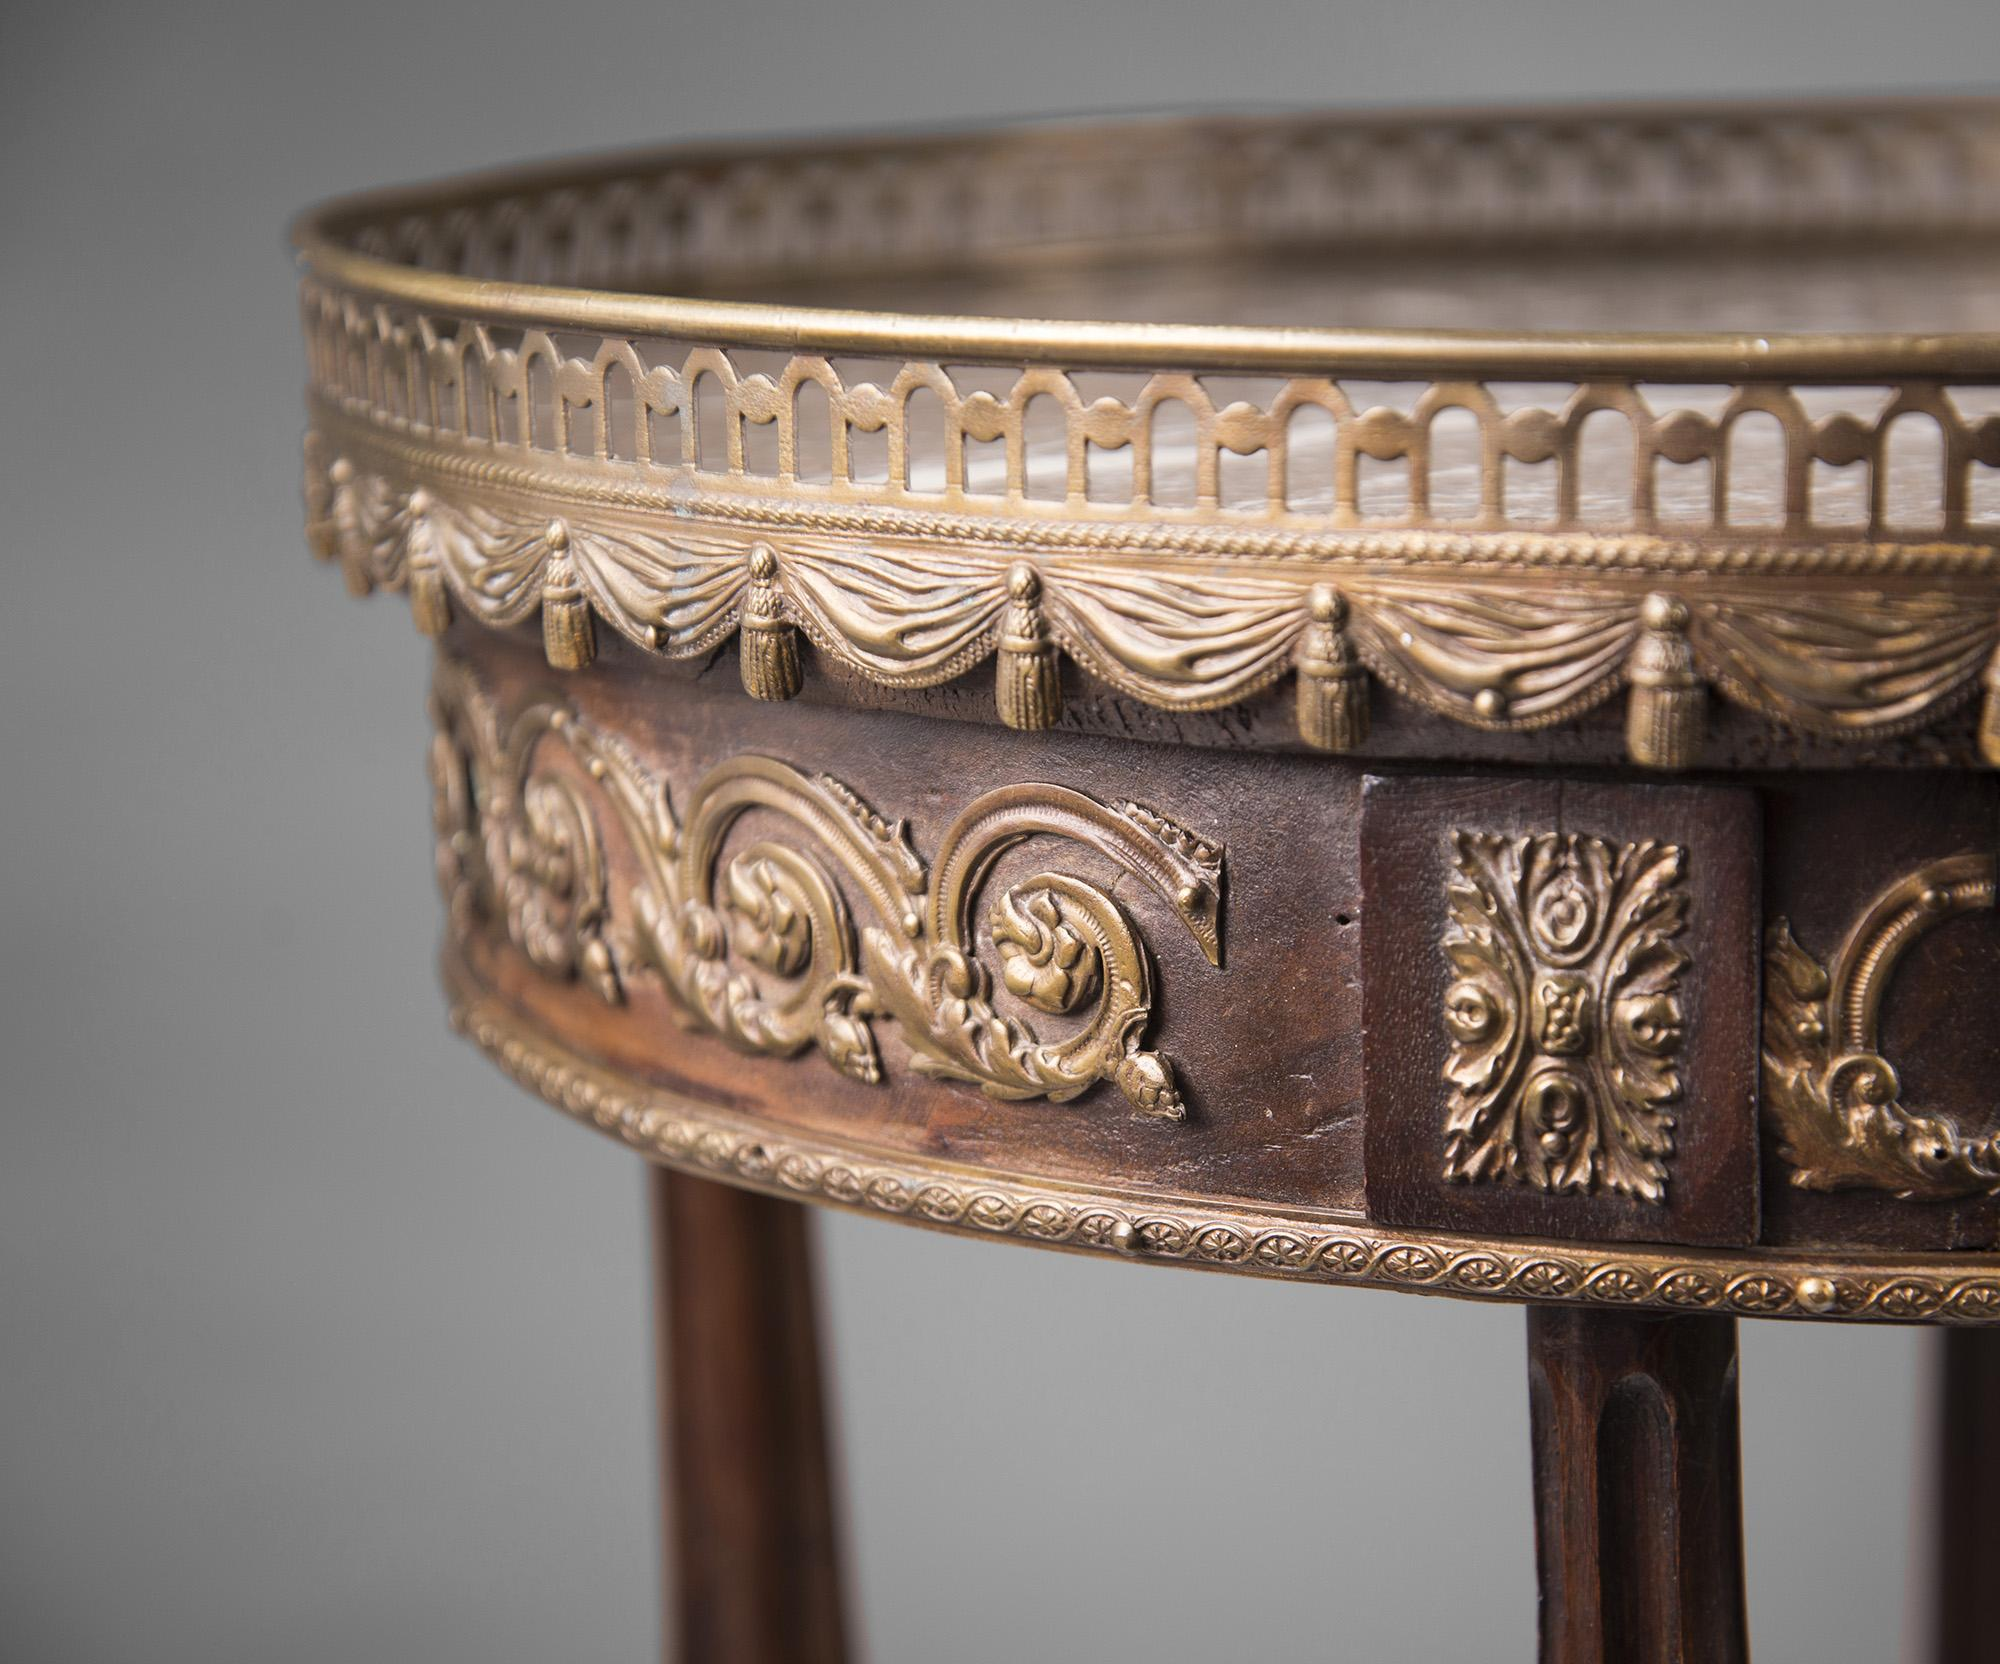 Early 20th C Louis XVI Style Ormolu Gueridon Side Table from